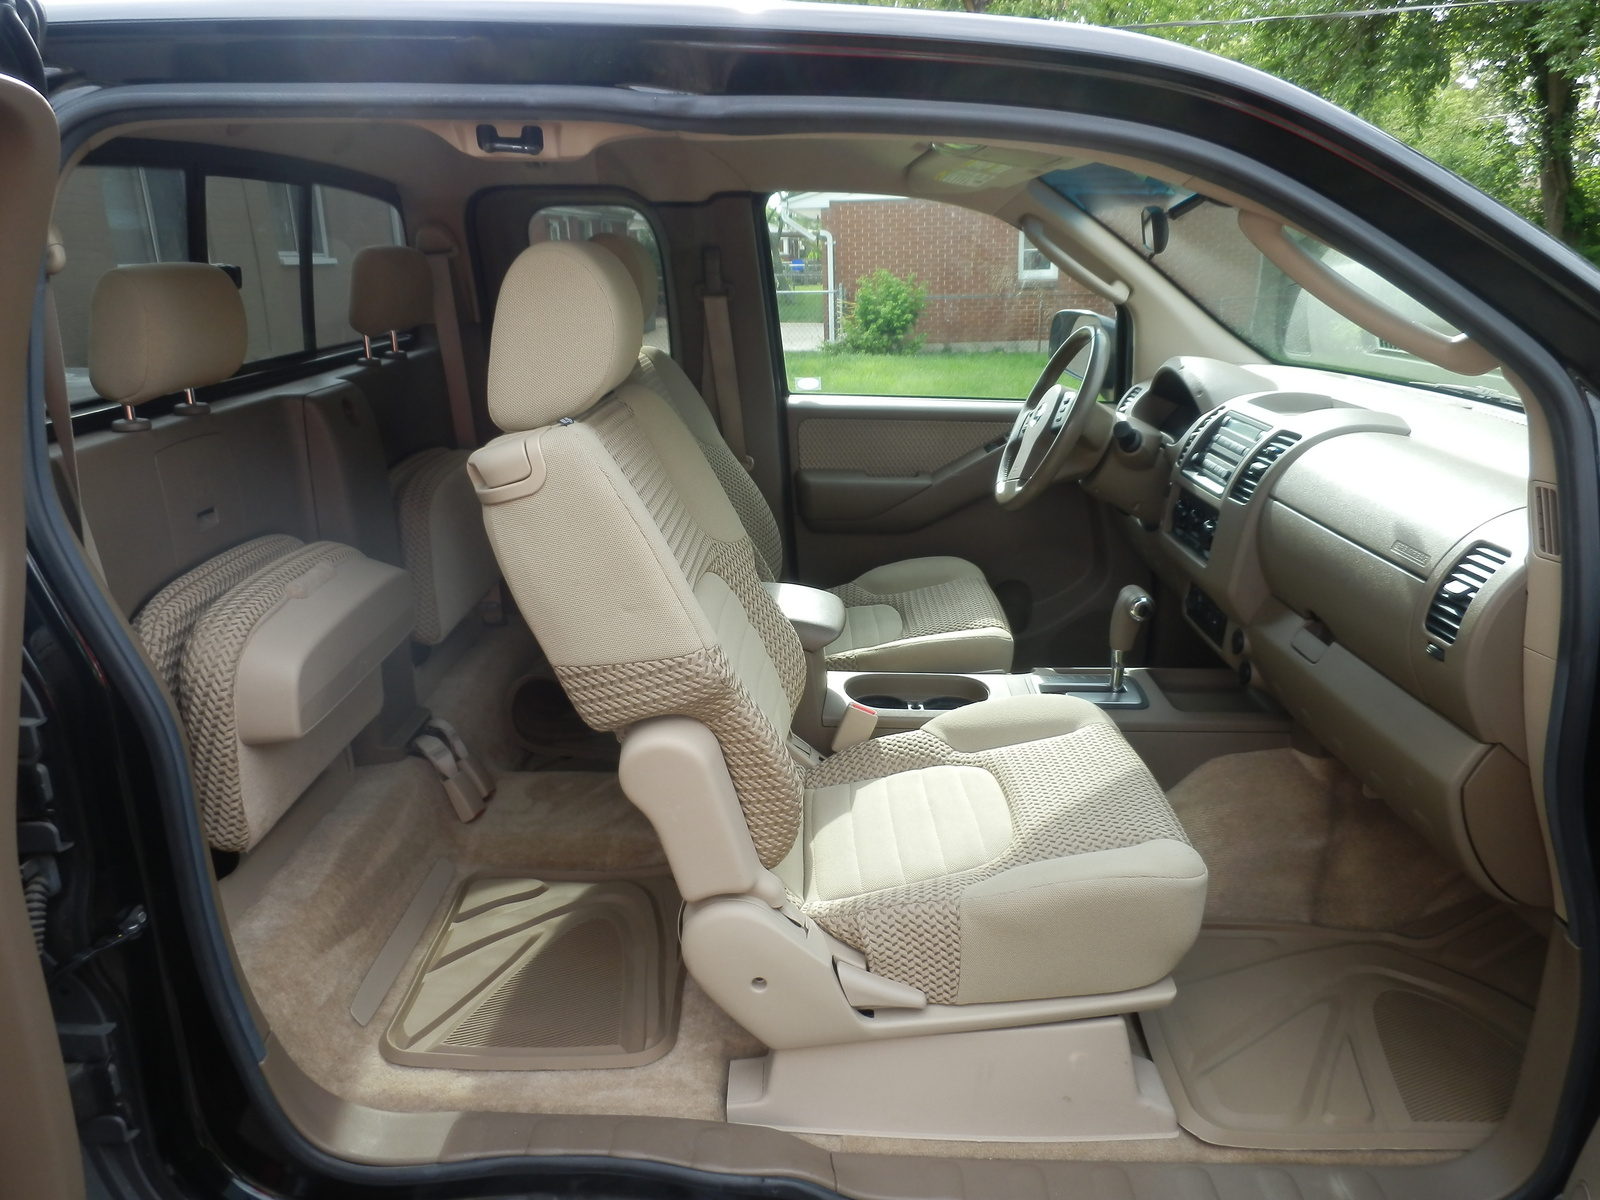 2004 nissan frontier king cab interior picture of 2005. Black Bedroom Furniture Sets. Home Design Ideas